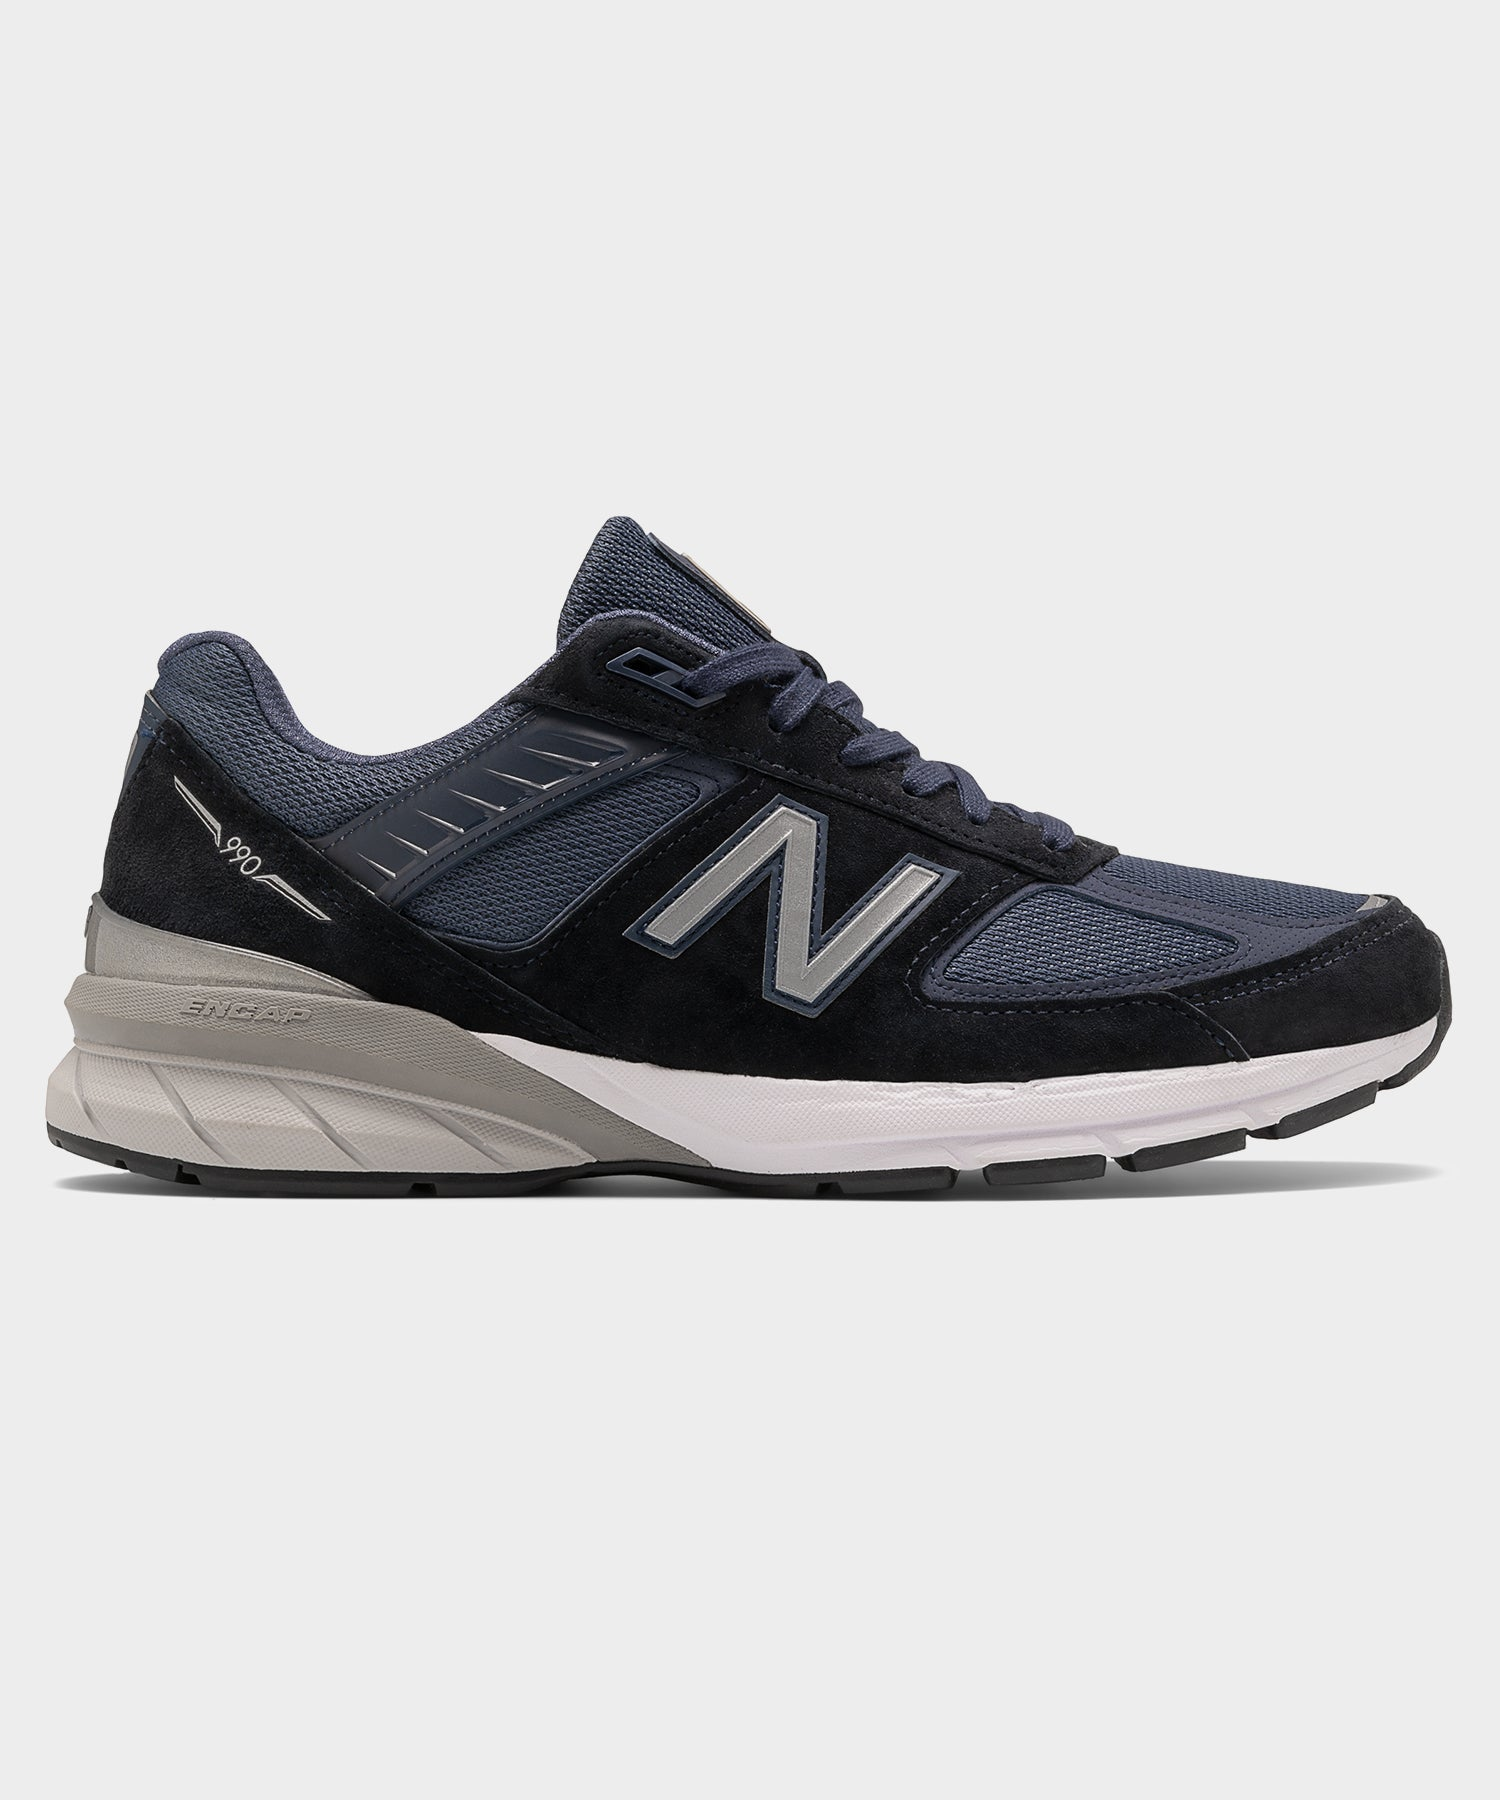 New Balance Made in USA 990v5 In Navy